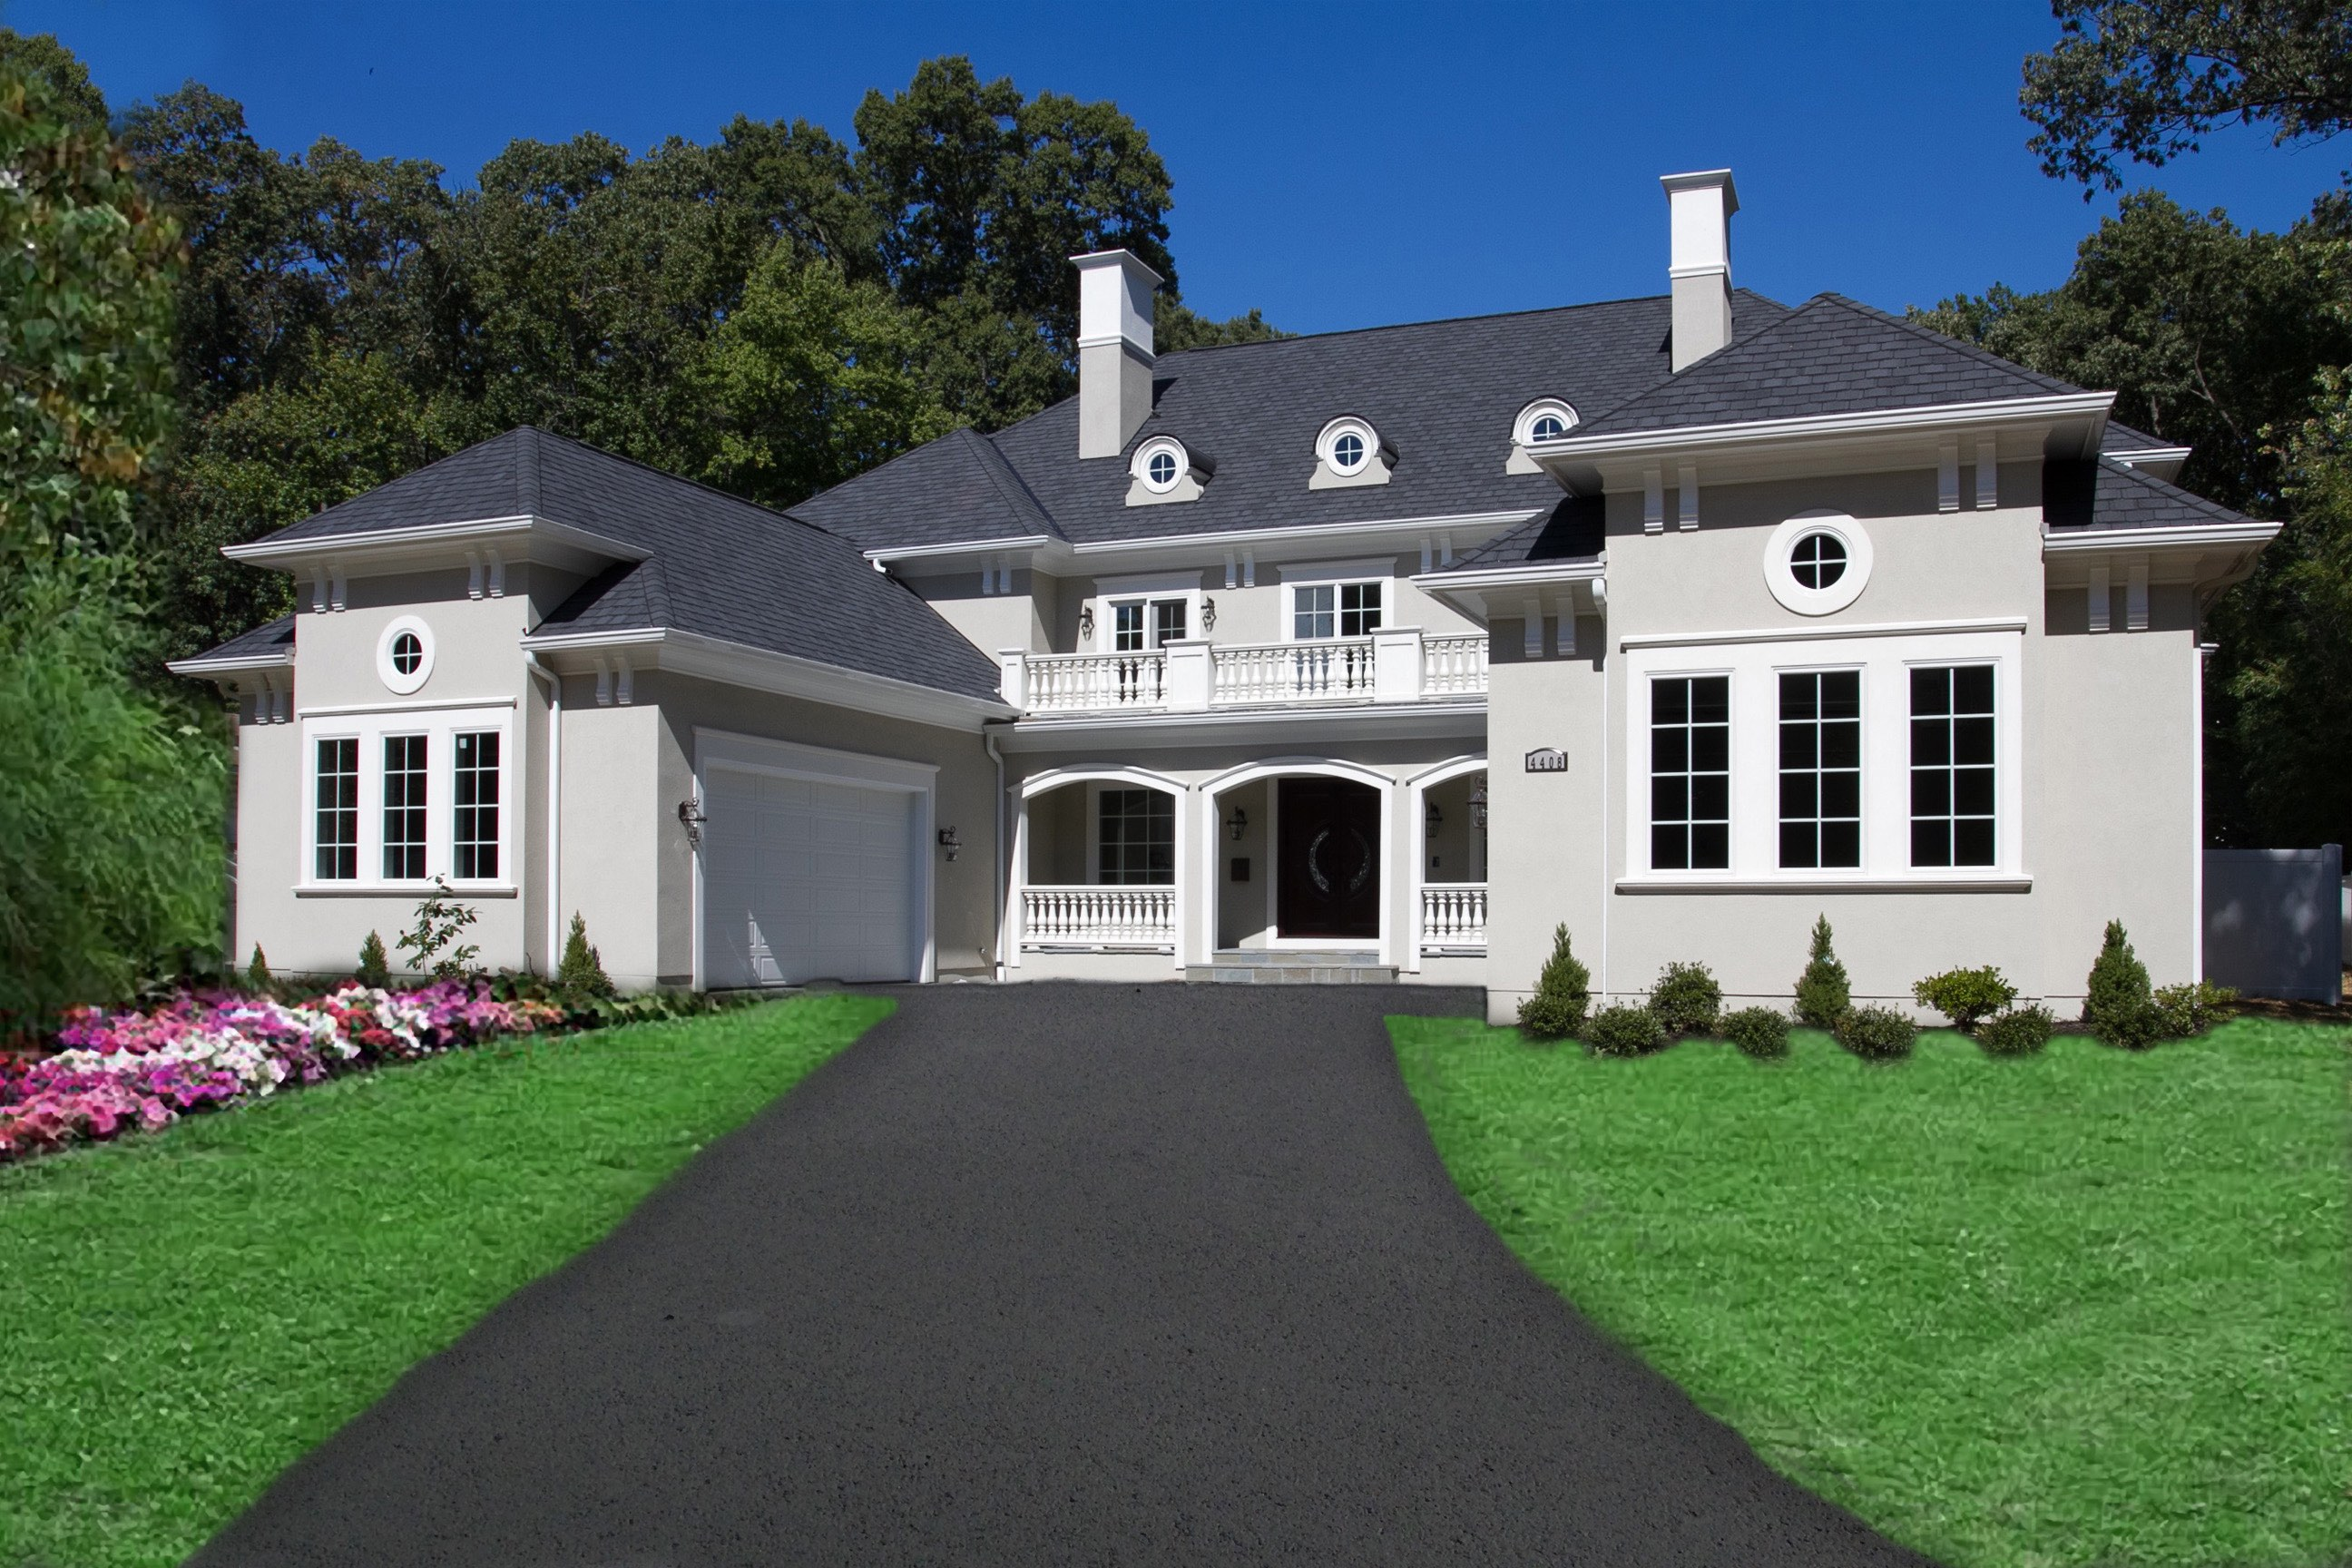 Single Family for Sale at By Botero Homes In Clifton-Tuscany Ii - Future Construction Of Custom Home Yates Ford Rd Clifton, Virginia 20124 United States